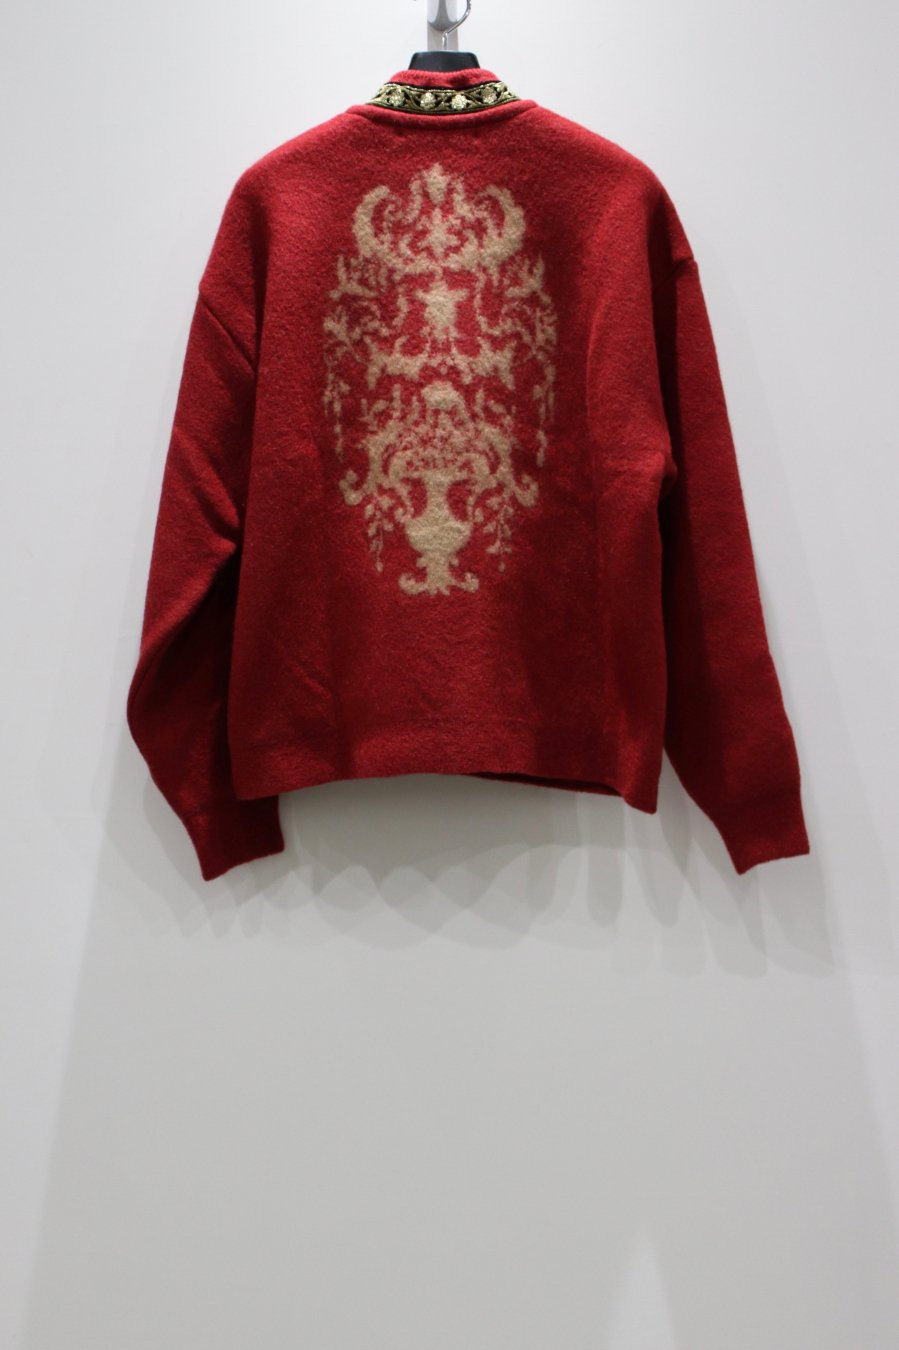 Children of the discordance × PALETTE art alive  ESTONITEX KNIT CARDIGAN(RED)<img class='new_mark_img2' src='https://img.shop-pro.jp/img/new/icons15.gif' style='border:none;display:inline;margin:0px;padding:0px;width:auto;' />